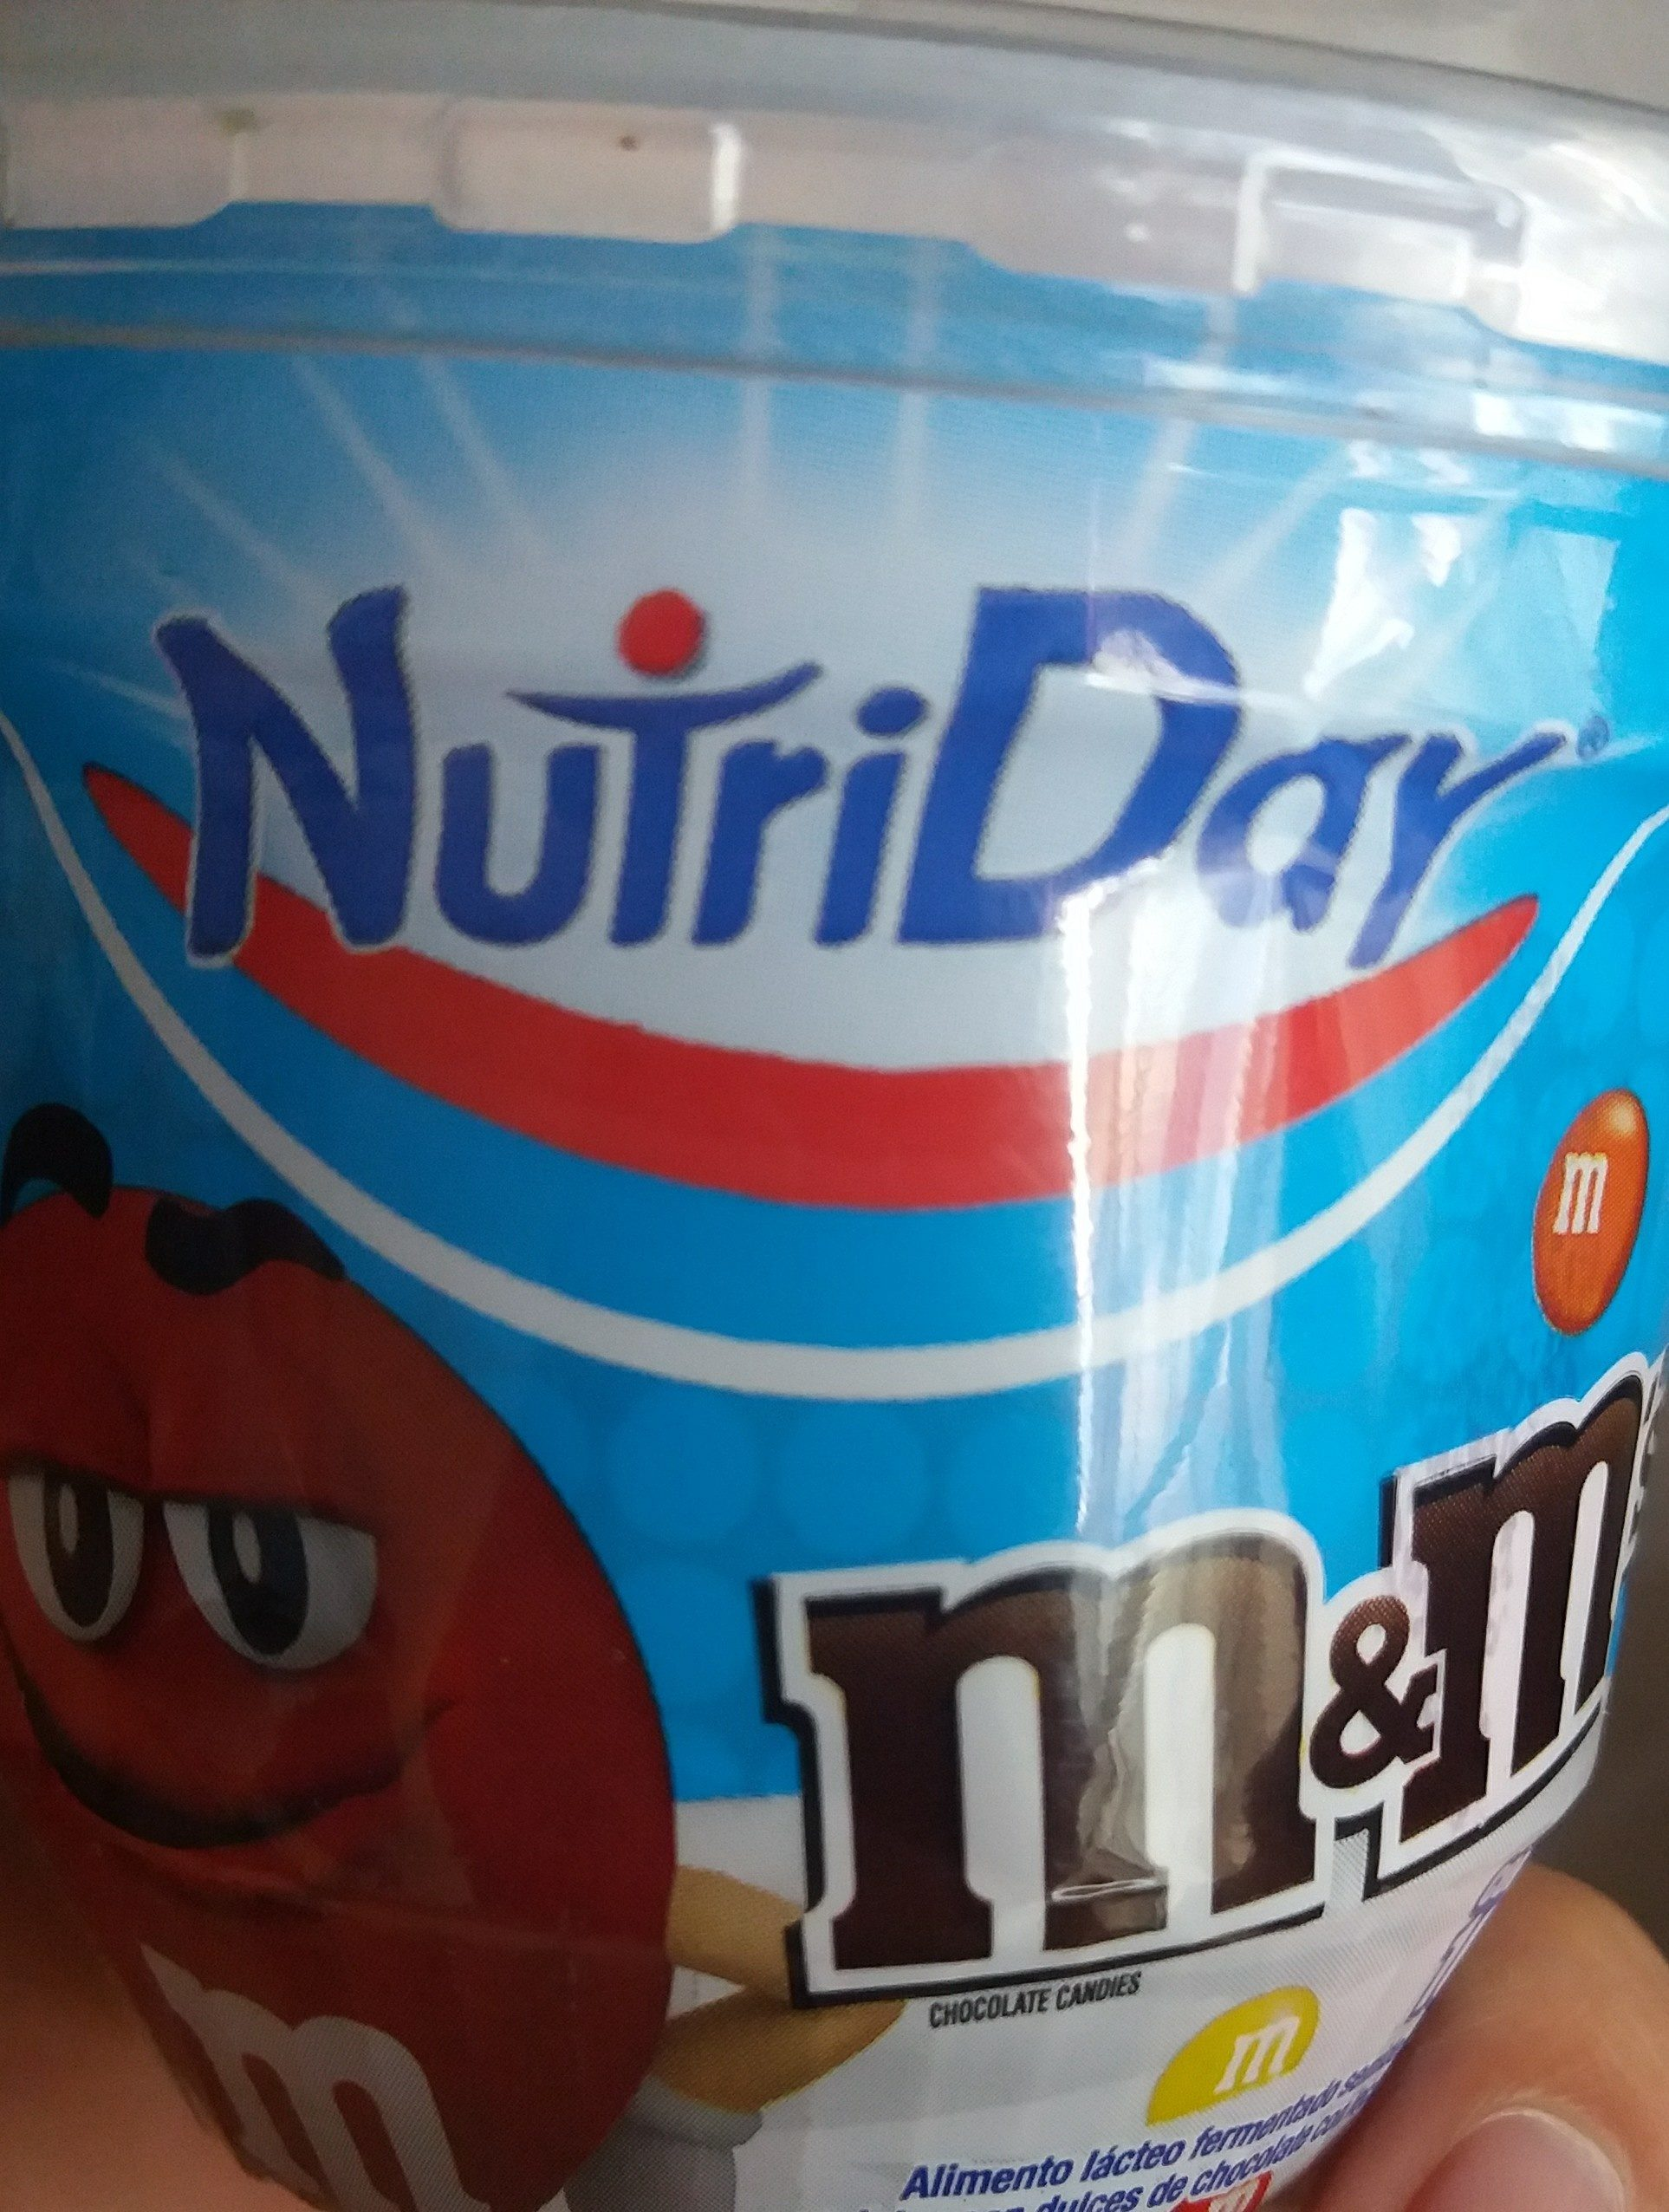 nurtiday - Product